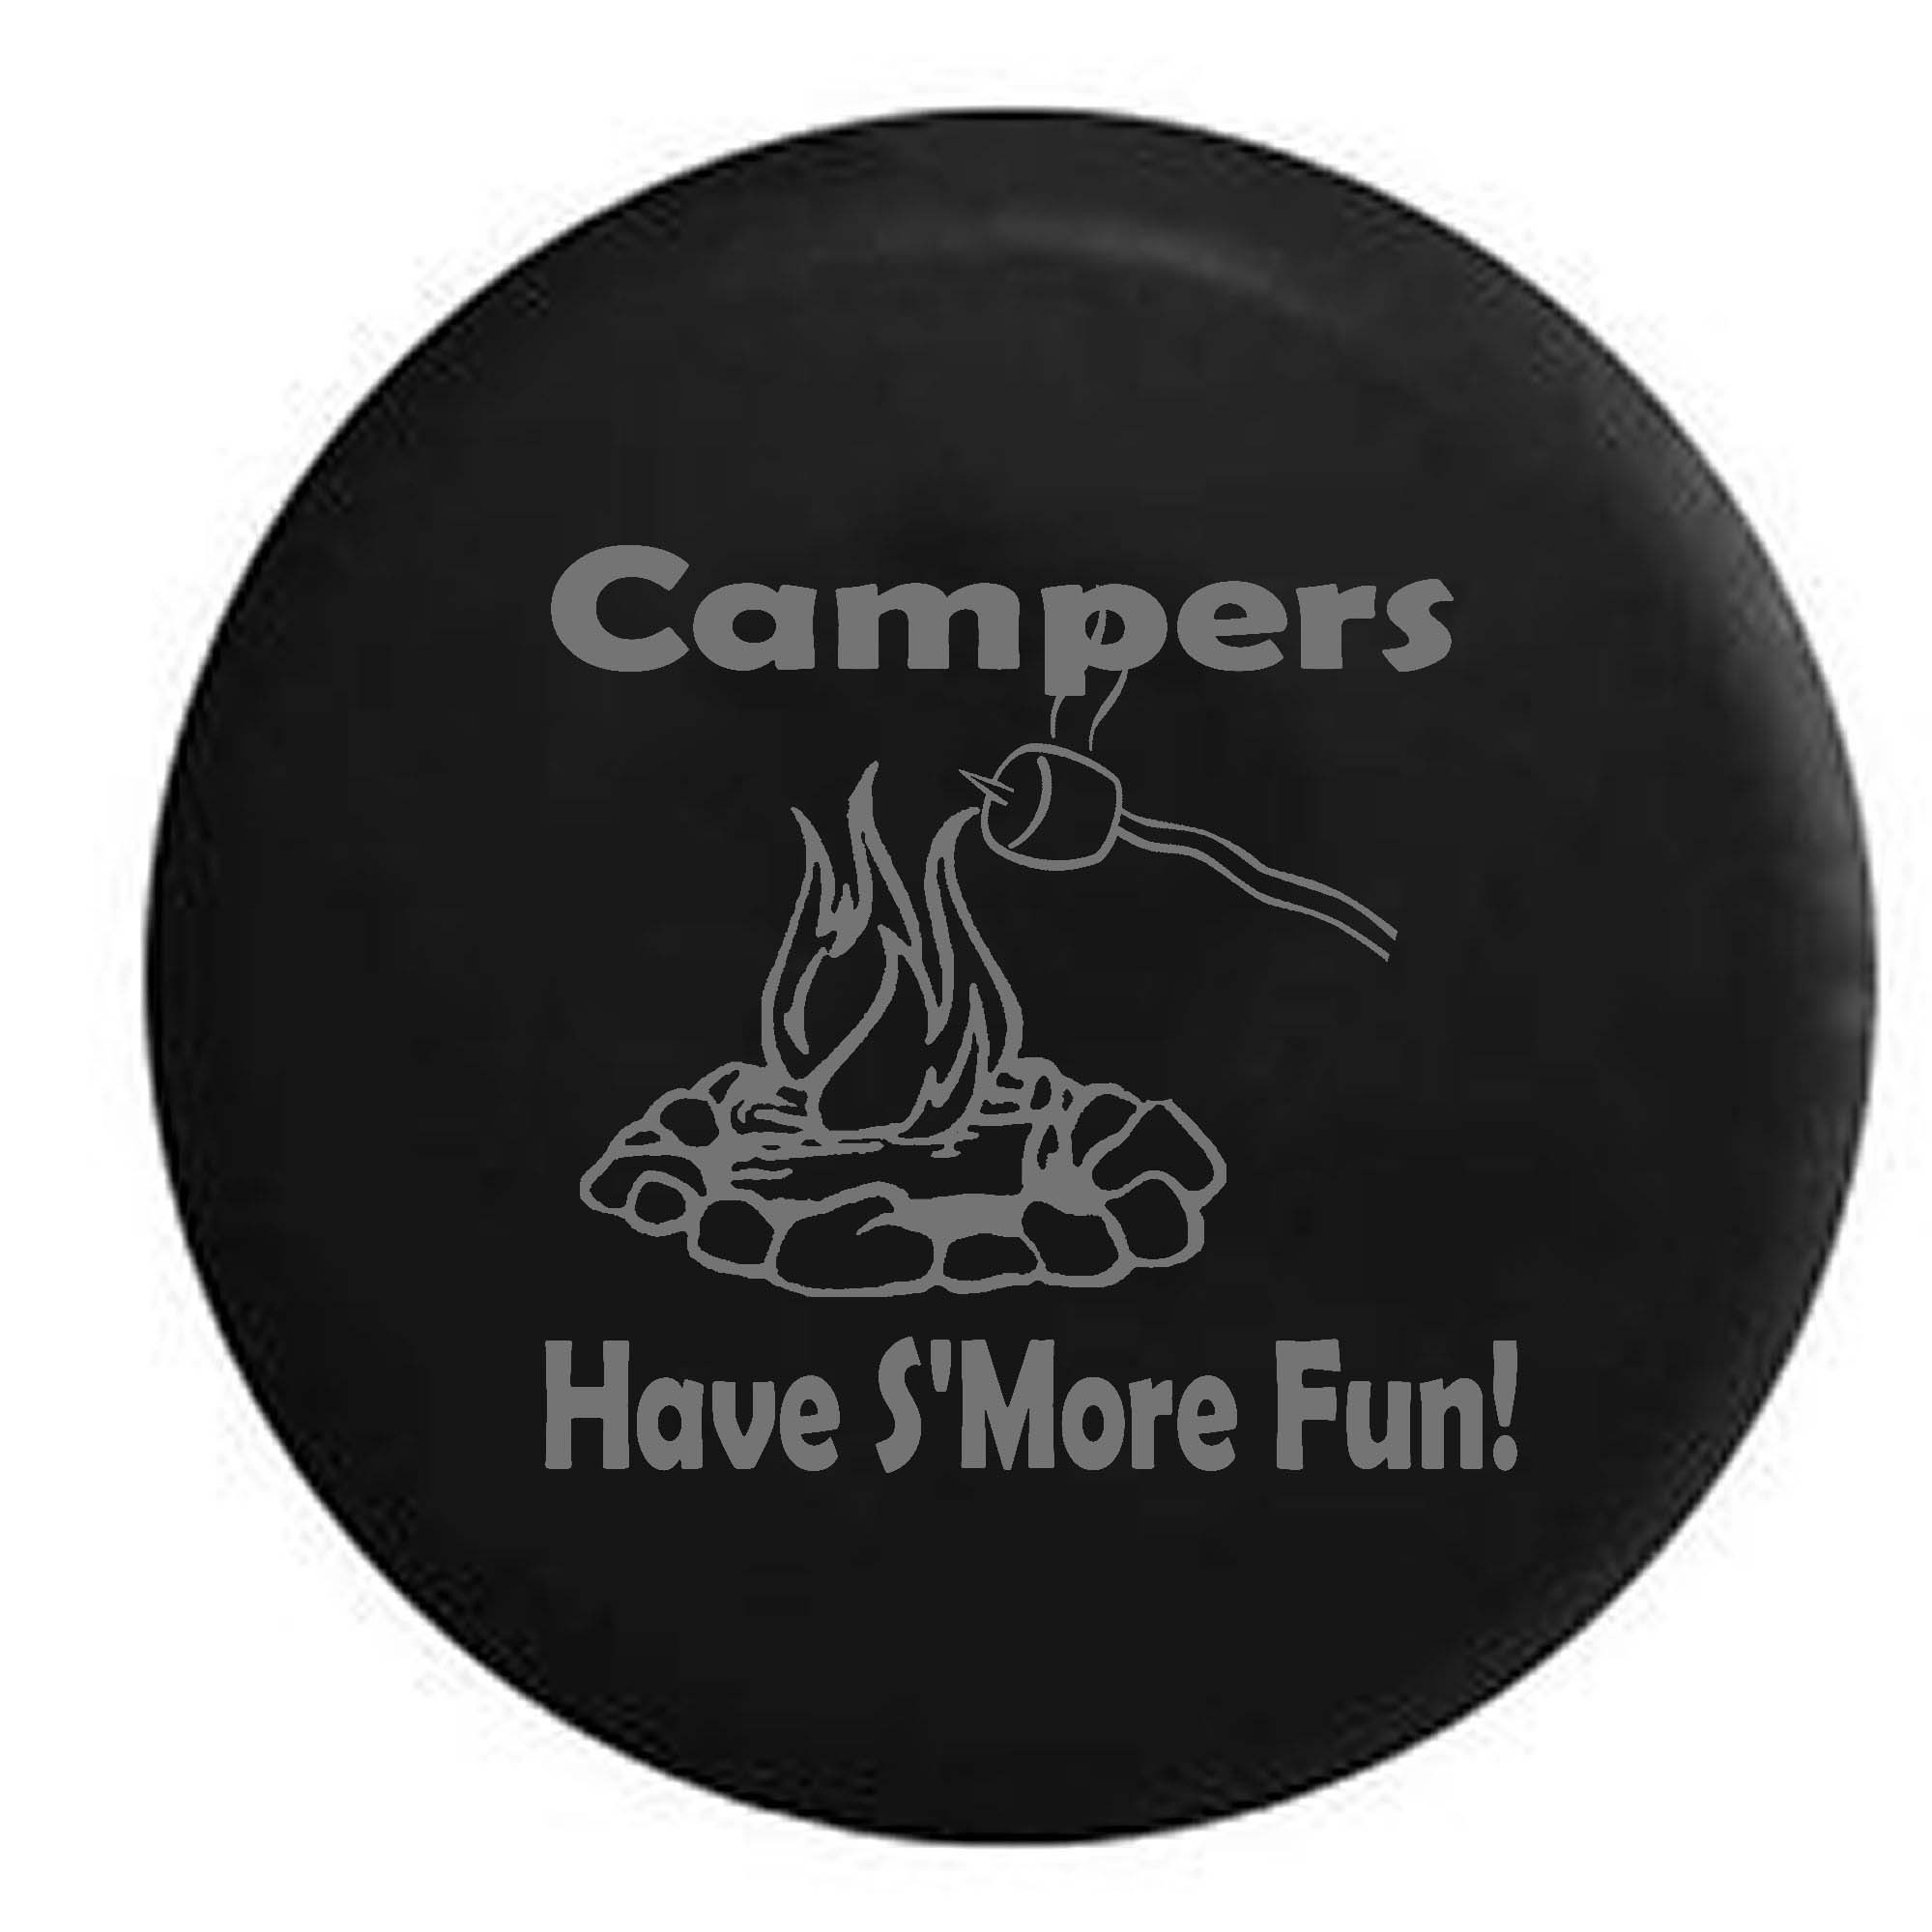 Campers Have S'more Fun Camping Travel Trailer Campfire Spare Tire Cover Black 27.5 in